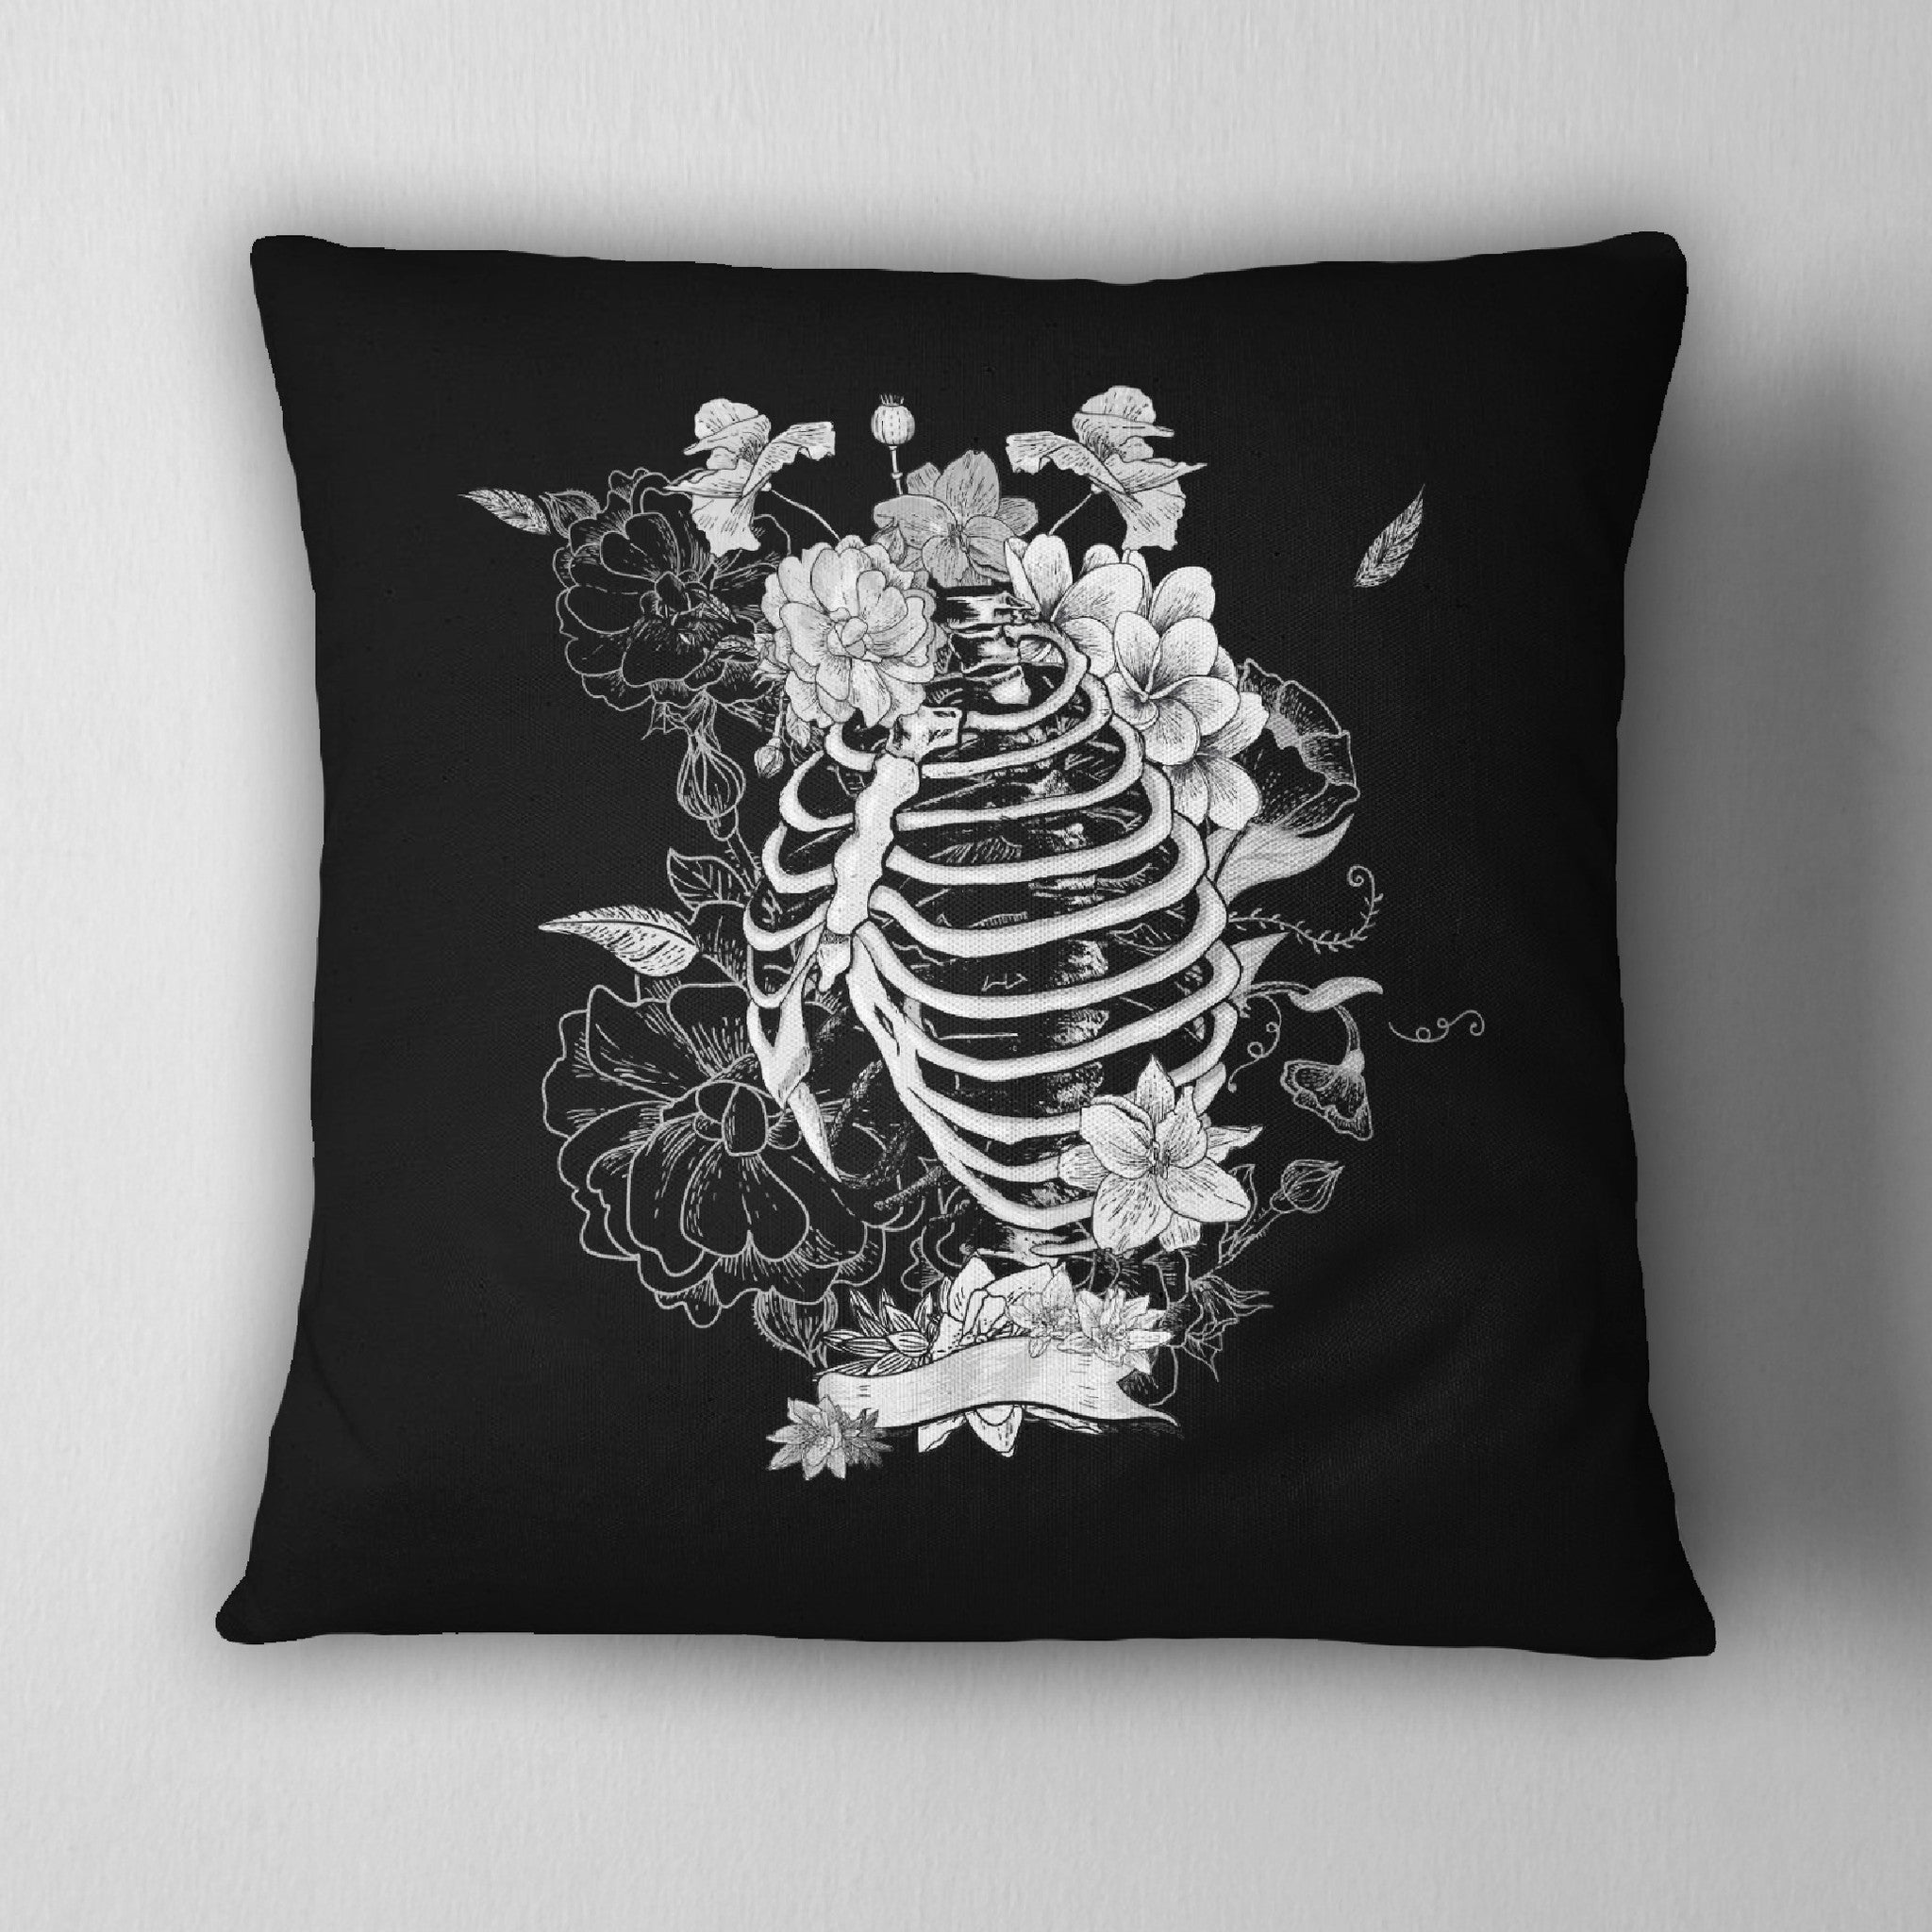 Black Flower Torso Skeleton Decorative Throw Pillow - Ink and Rags